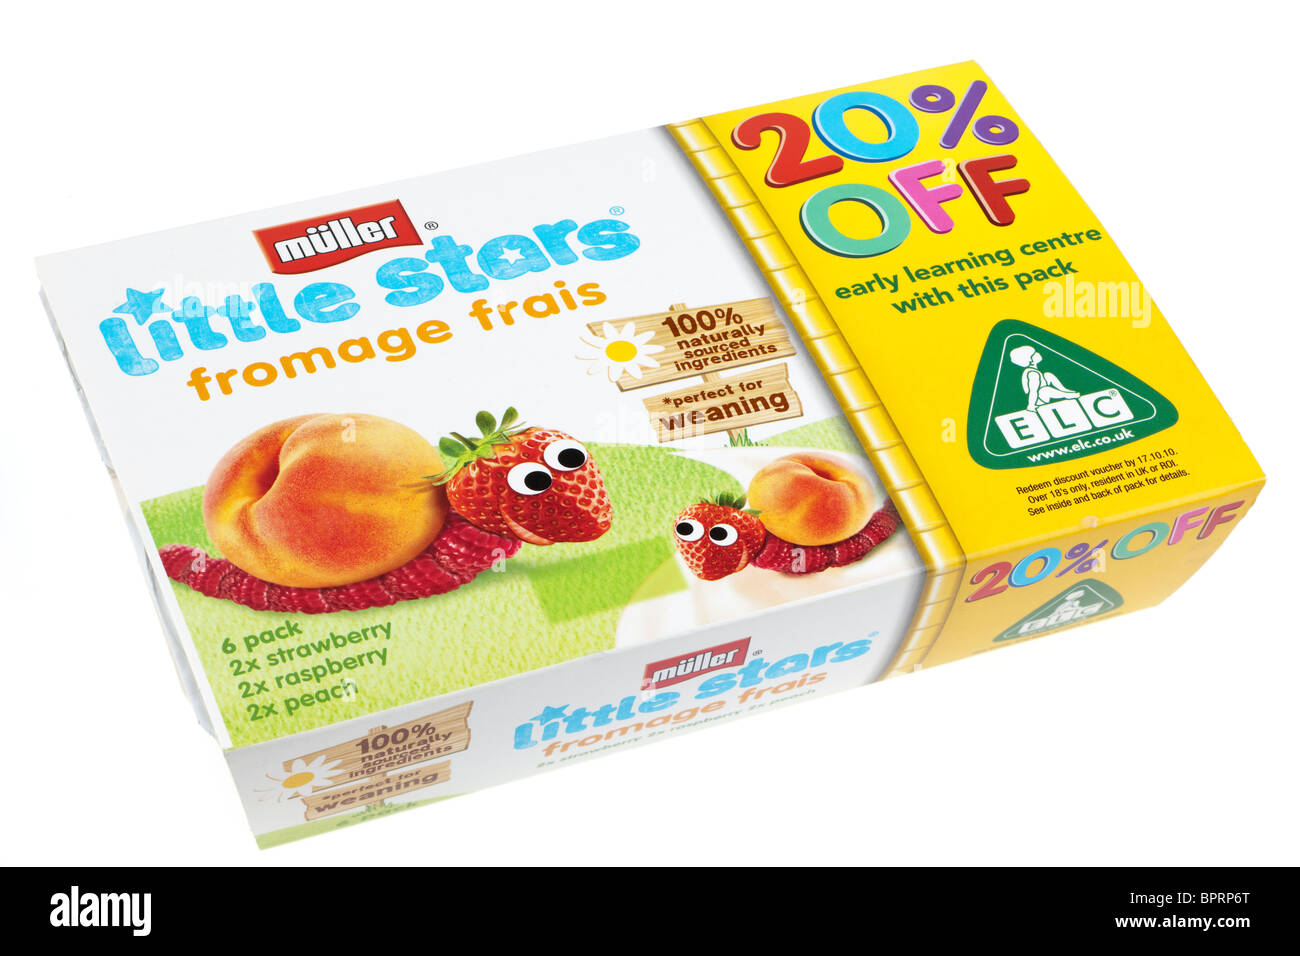 Six Packet of Muller Little stars fromage frais strawberry raspberry and peach flavoured - Stock Image